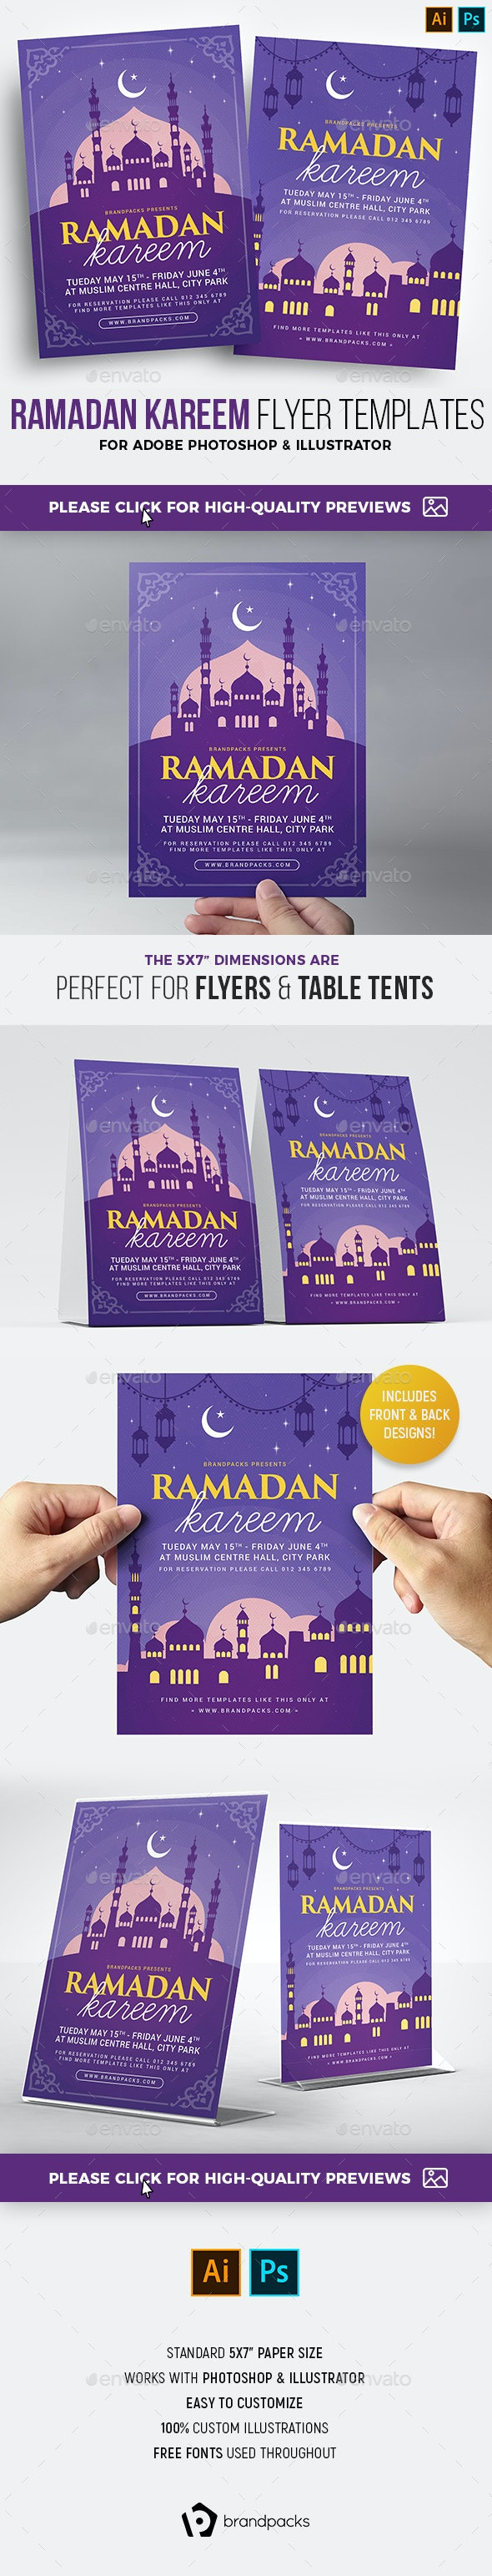 Ramadan Kareem Flyer Templates - Holidays Events